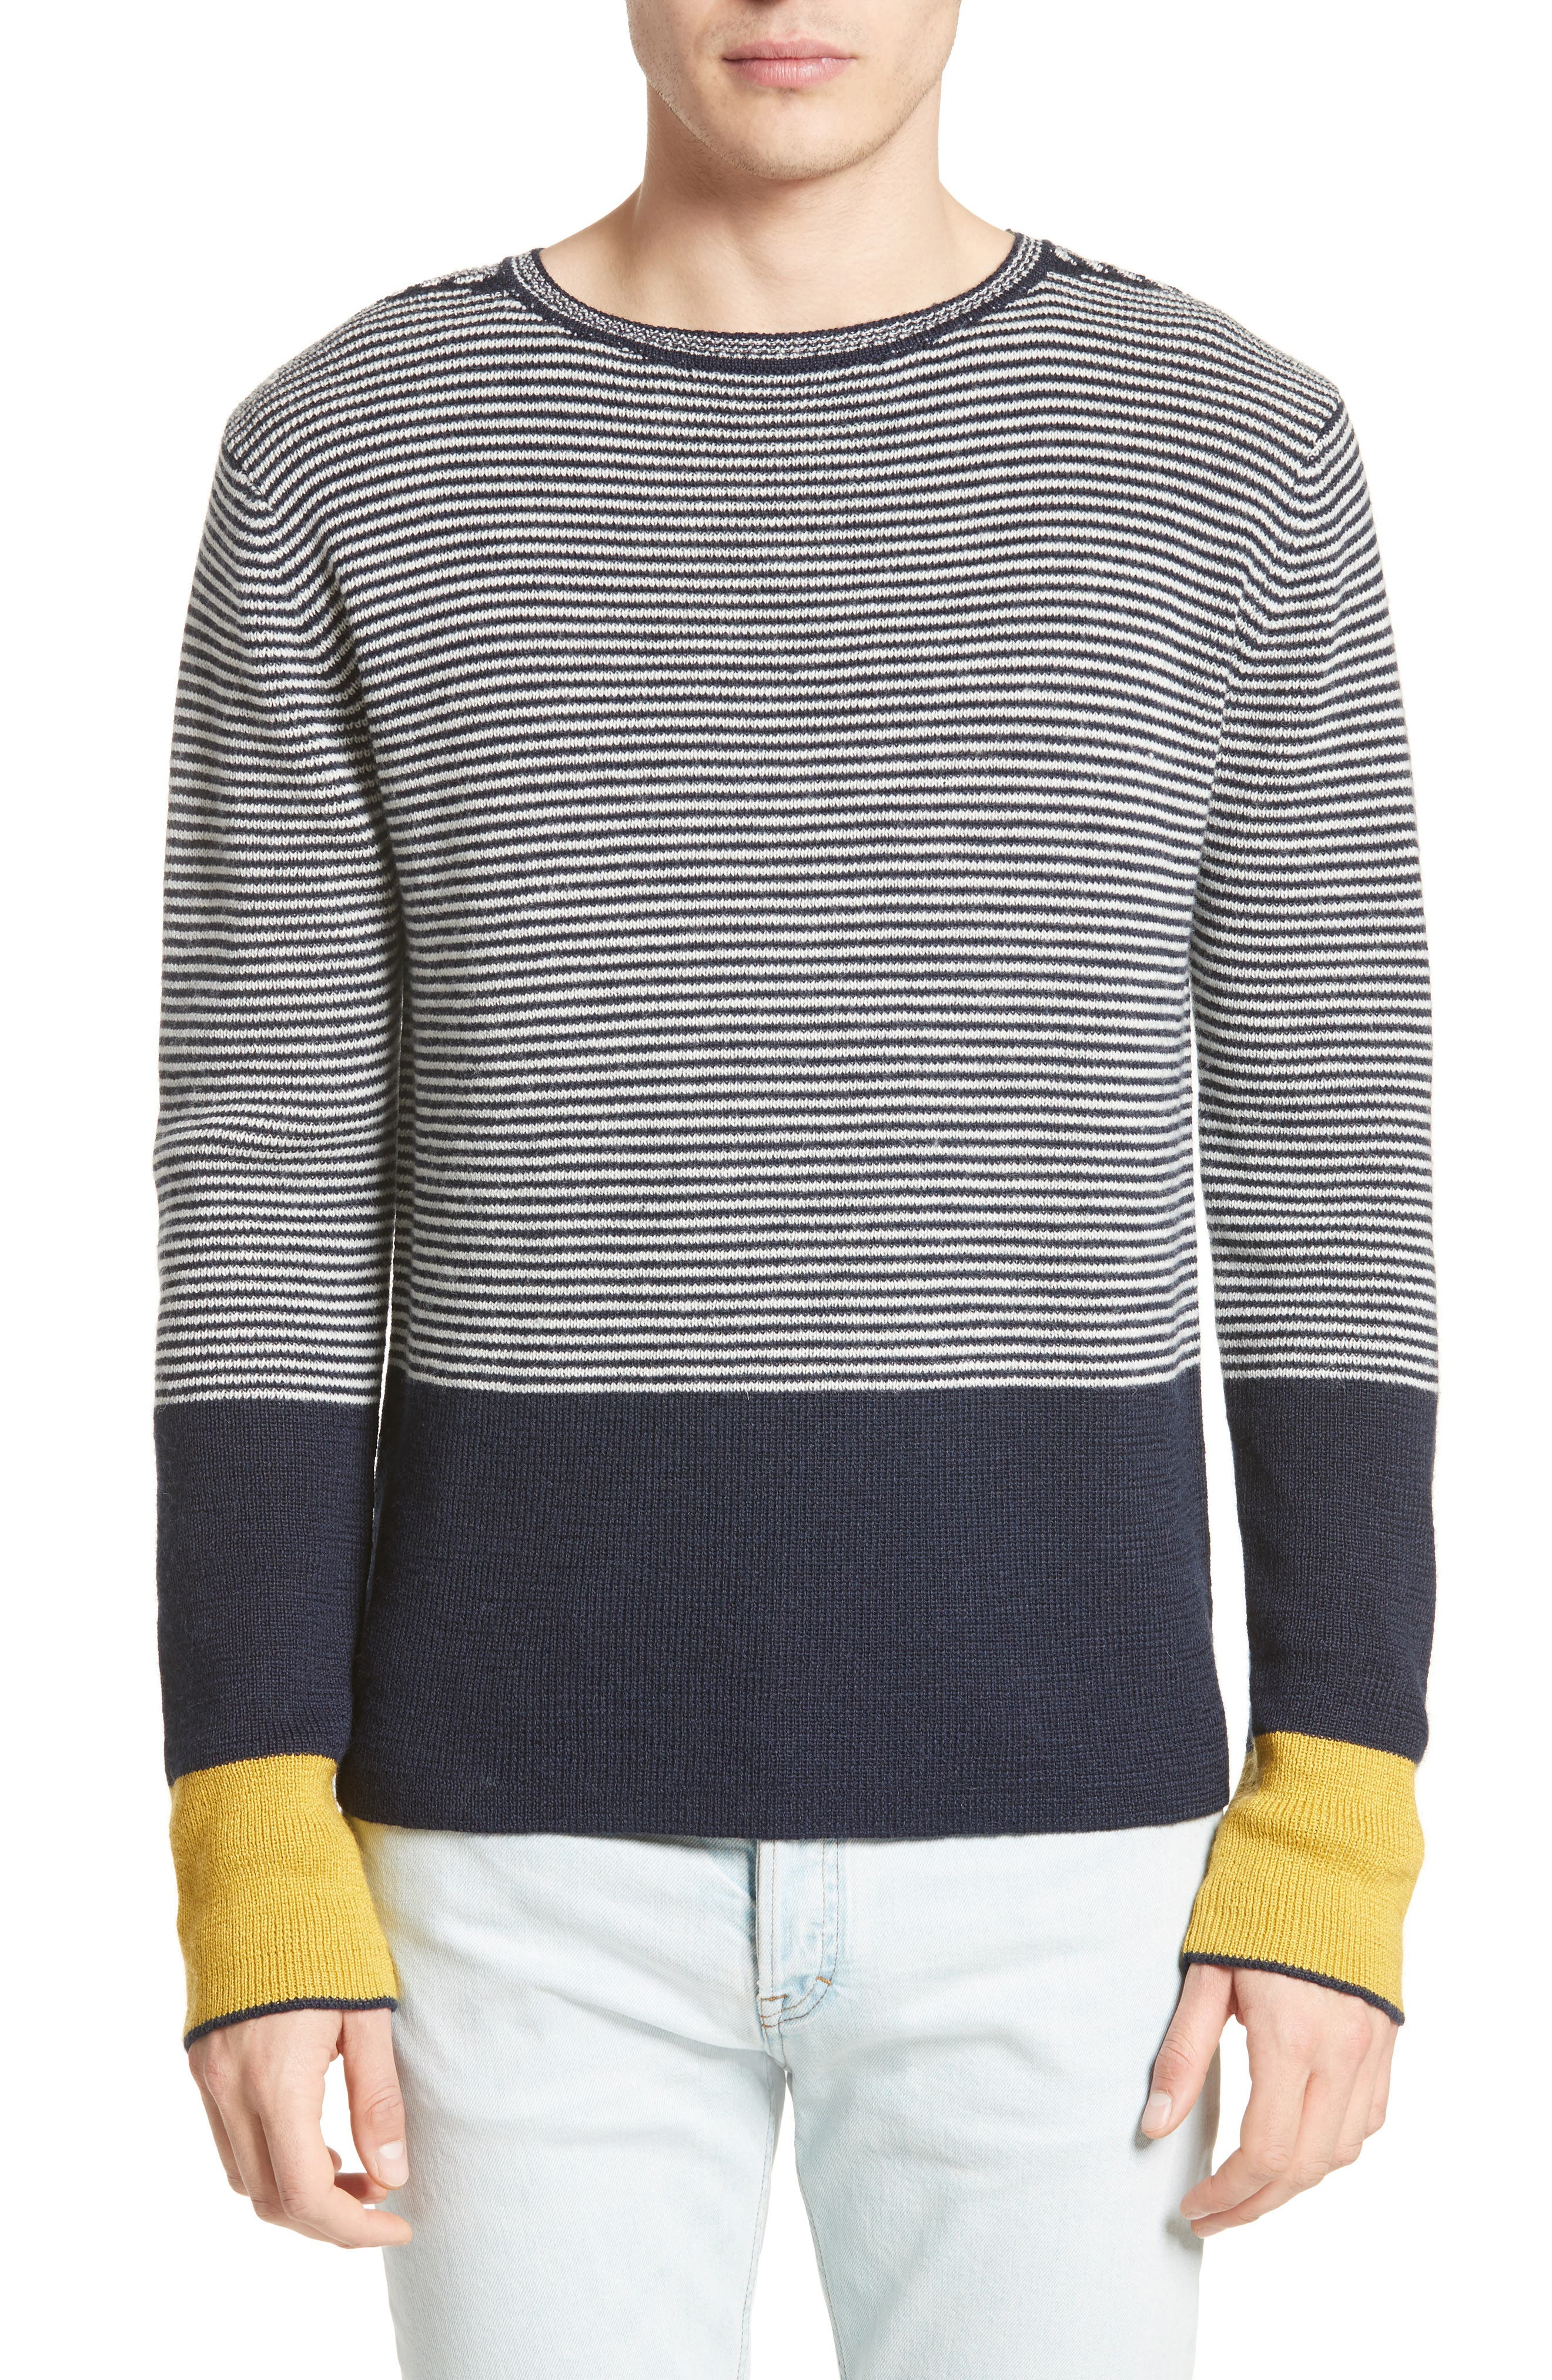 ACNE Studios Noah Colorblock Sweater